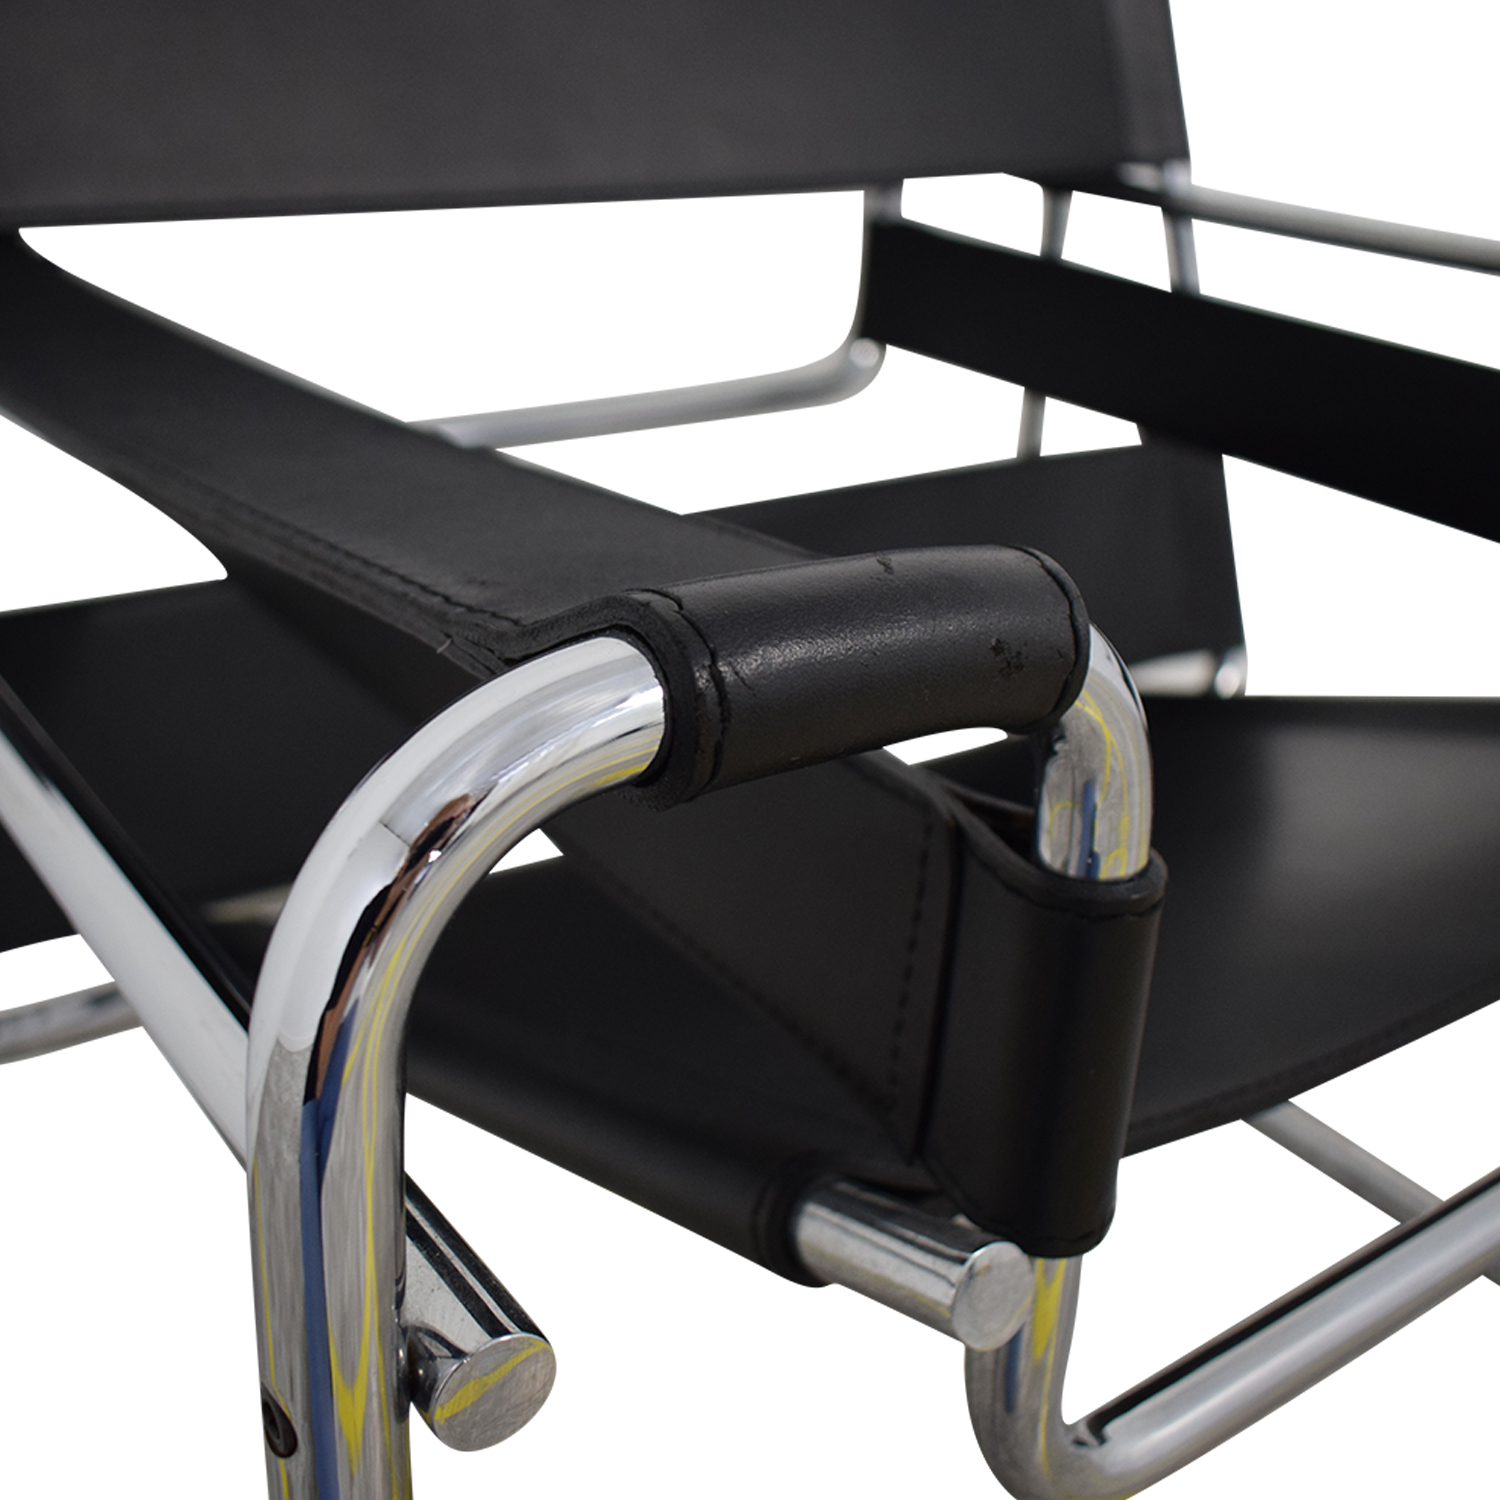 Knoll Knoll Marcel Breuer Wassily Chair dimensions